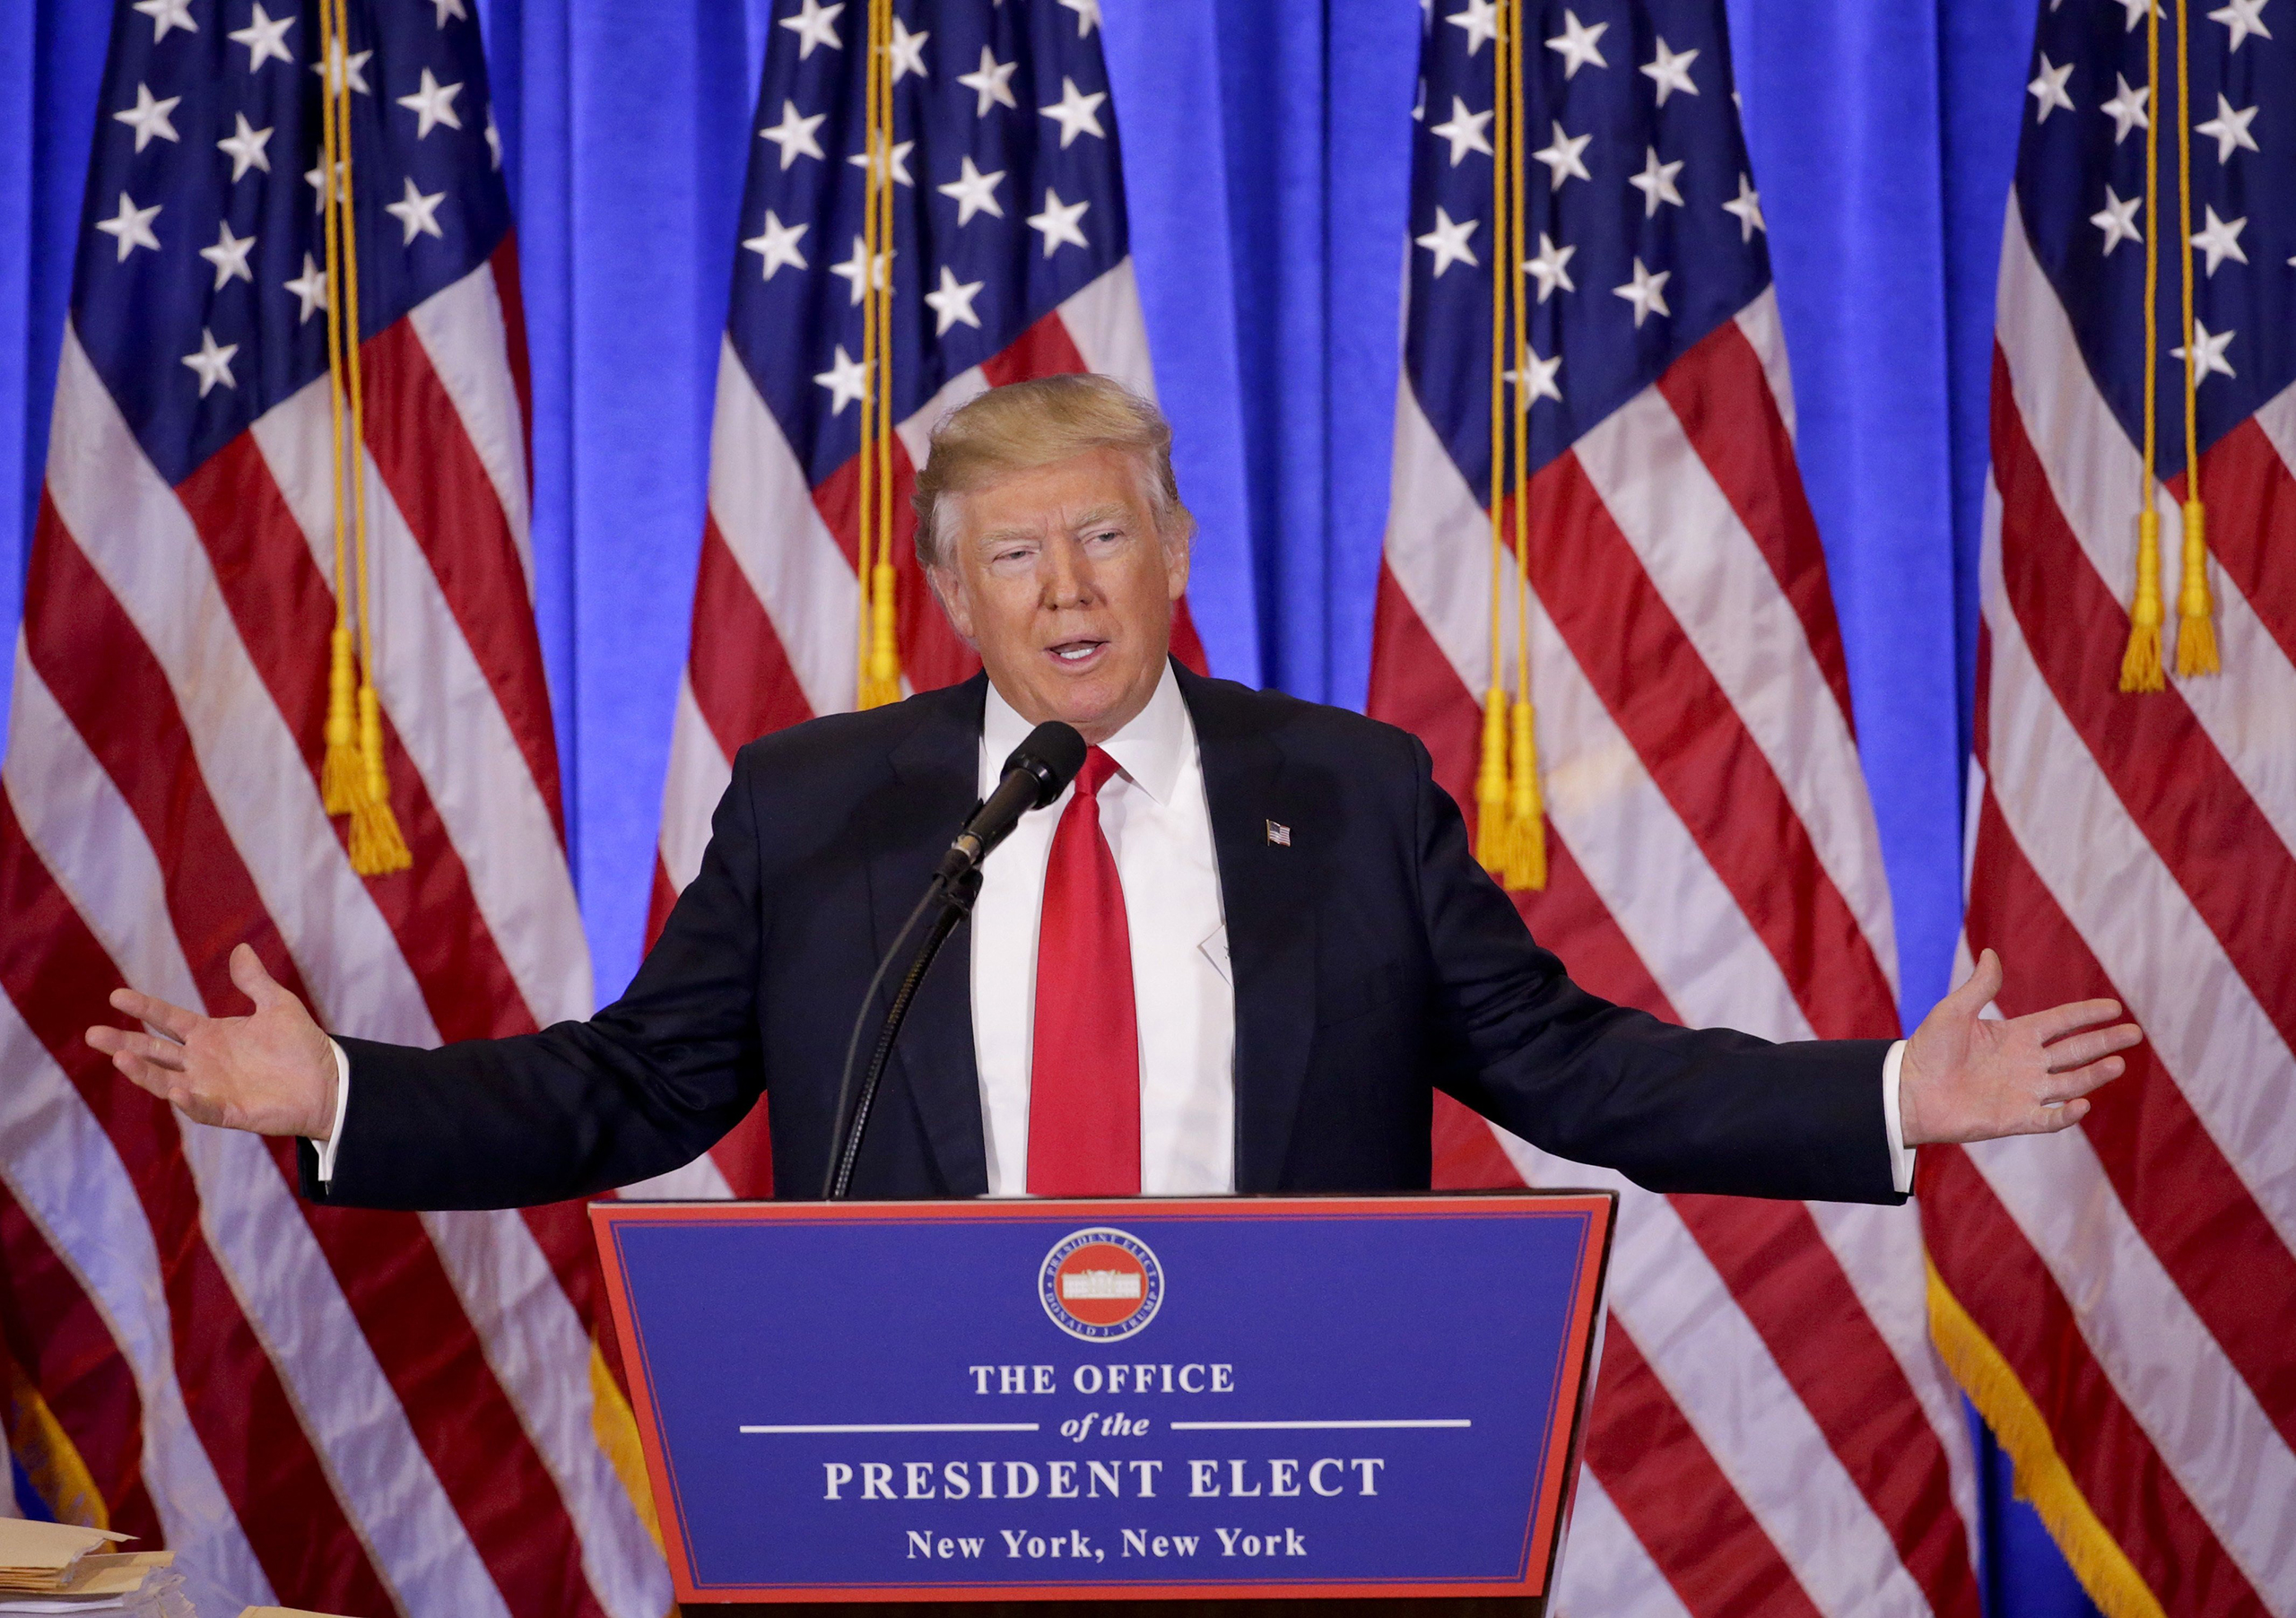 At his first news conference in months, Trump faced questions about alleged Russian ties.